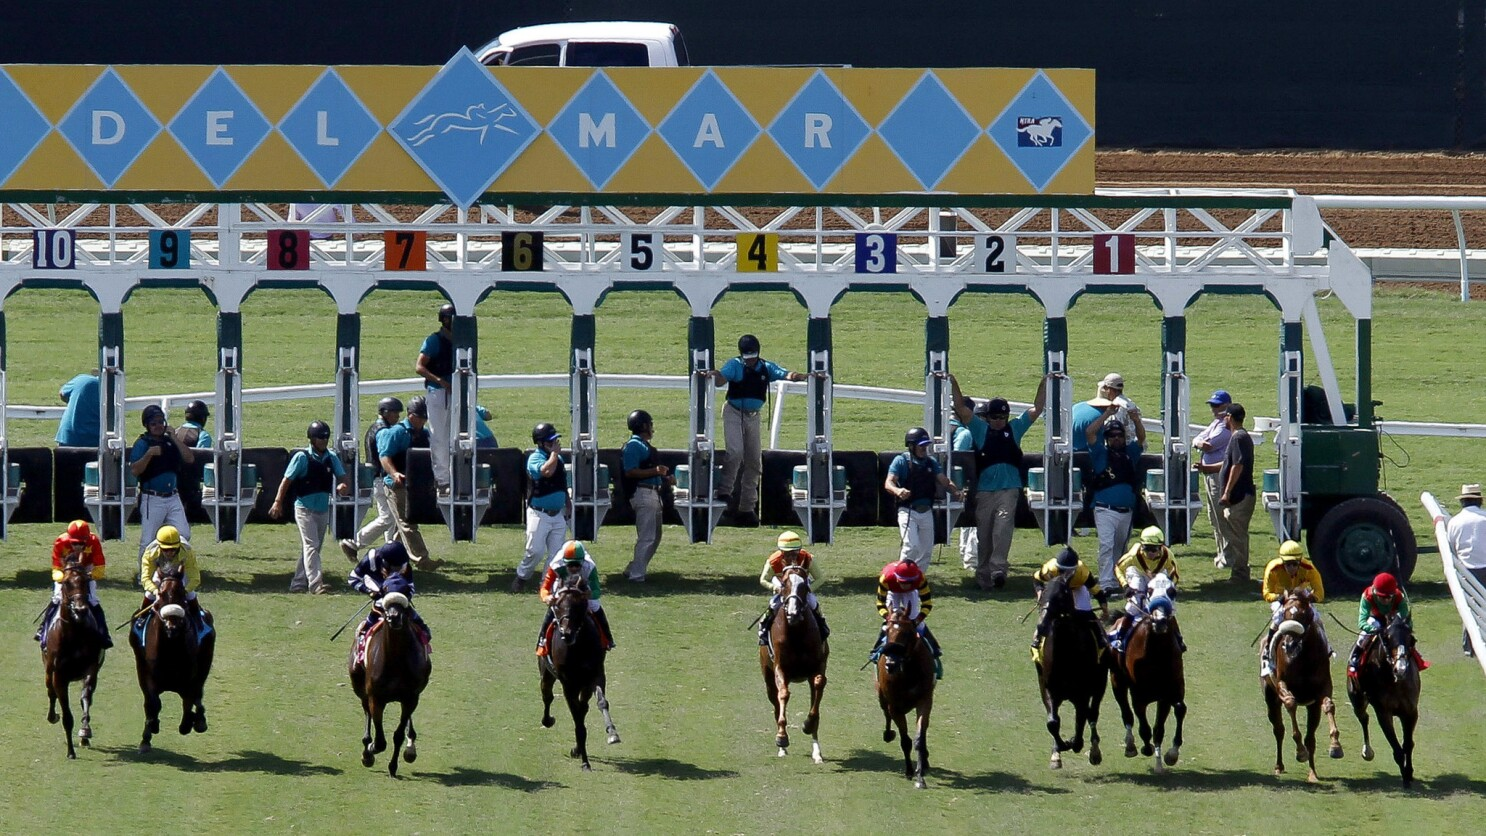 Santa ana park racing race program betting on sports super 15 rugby early betting